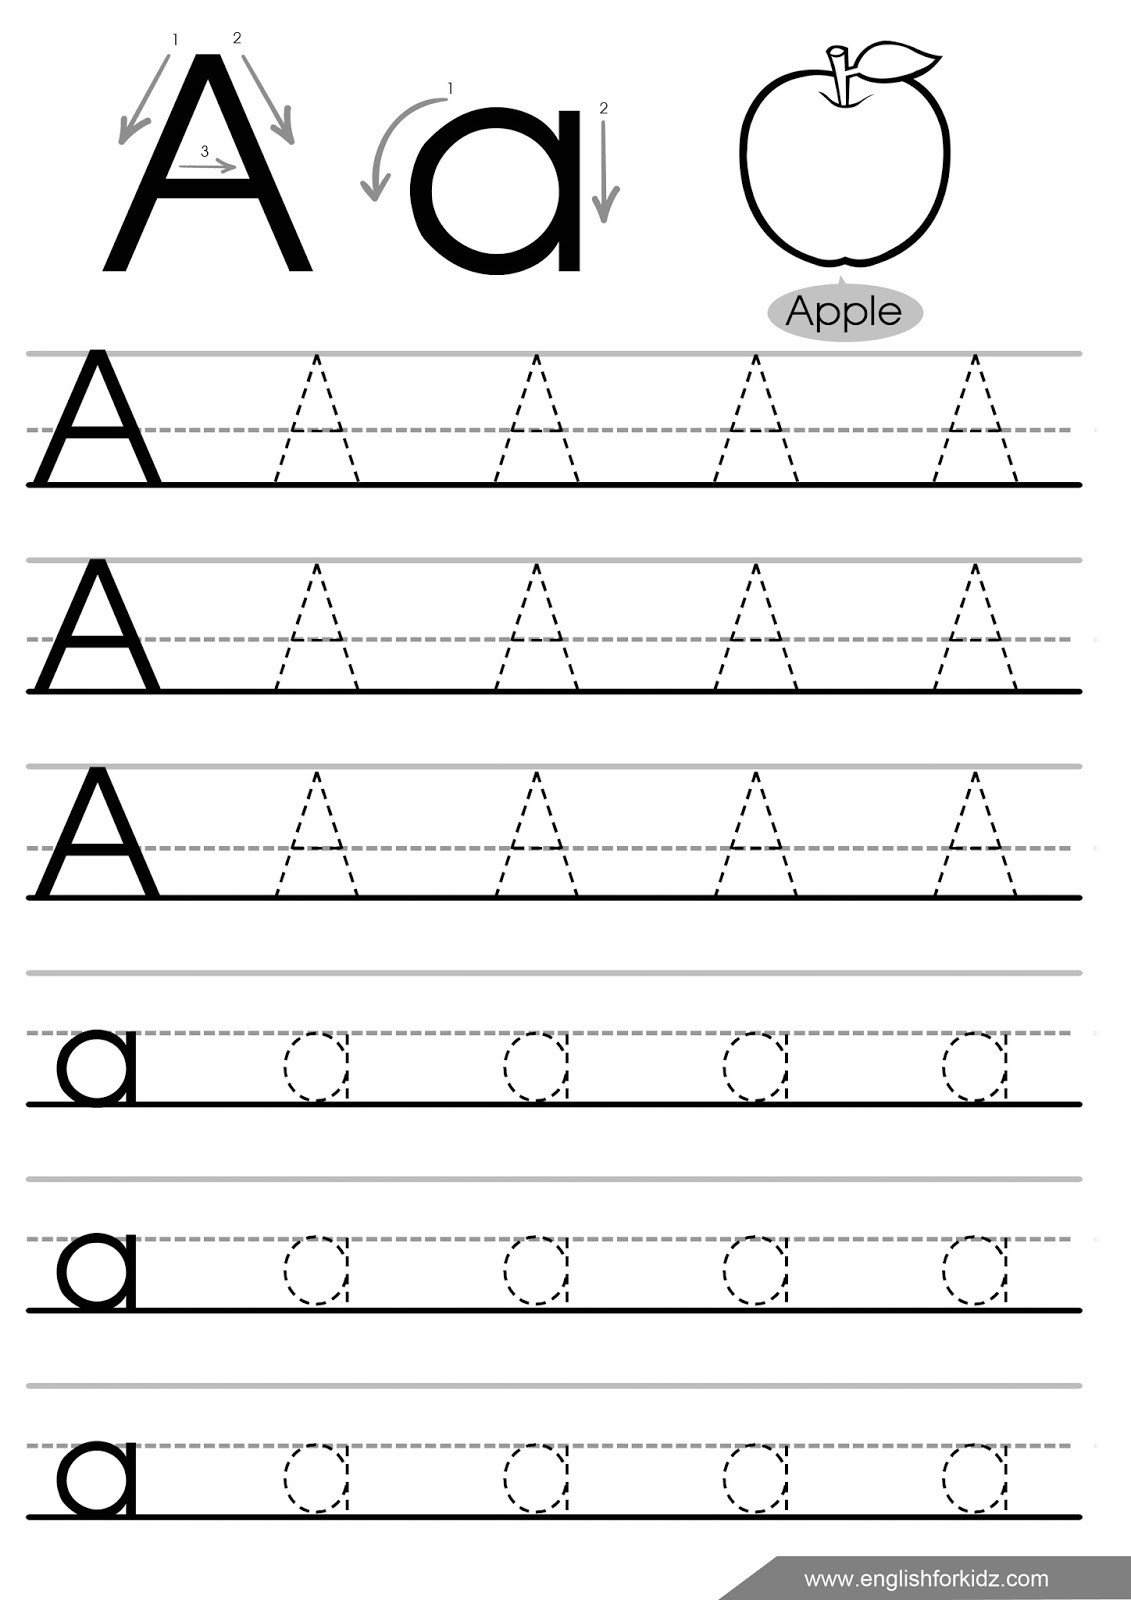 Letter and Number Tracing Worksheets Math Worksheet Alphabet Tracing Worksheets for